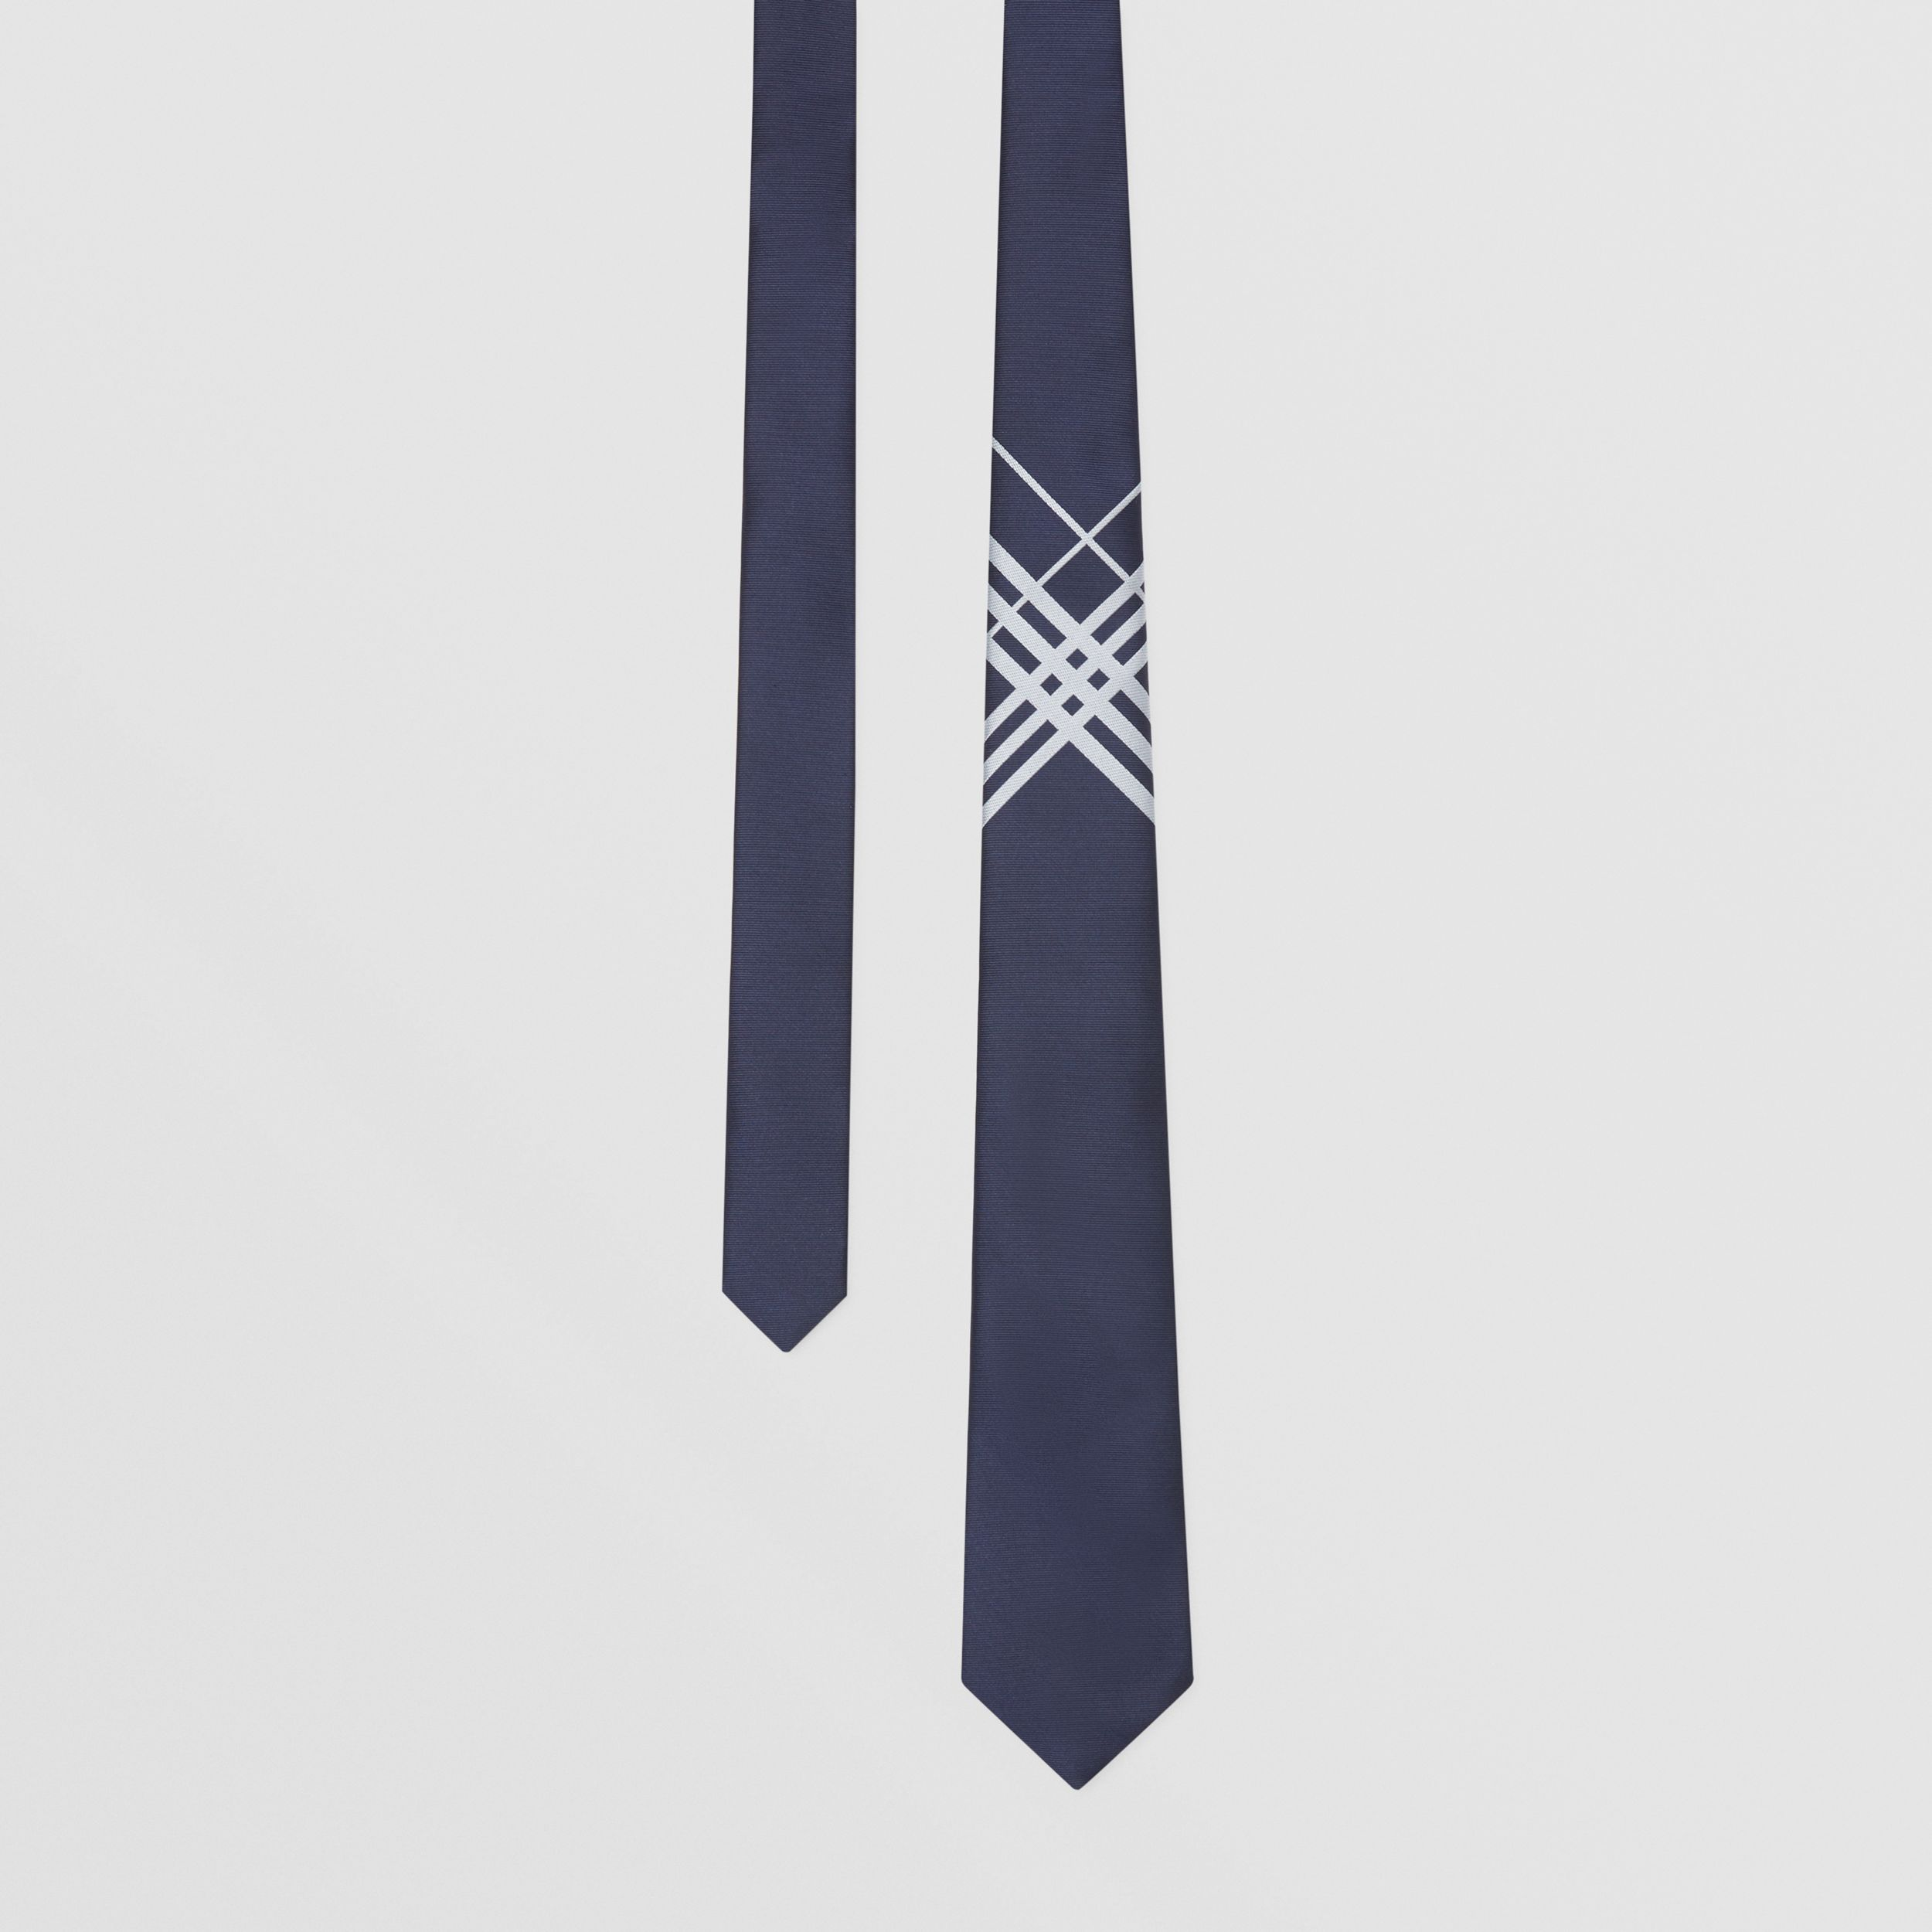 Classic Cut Check Silk Jacquard Tie in Navy - Men | Burberry - 1